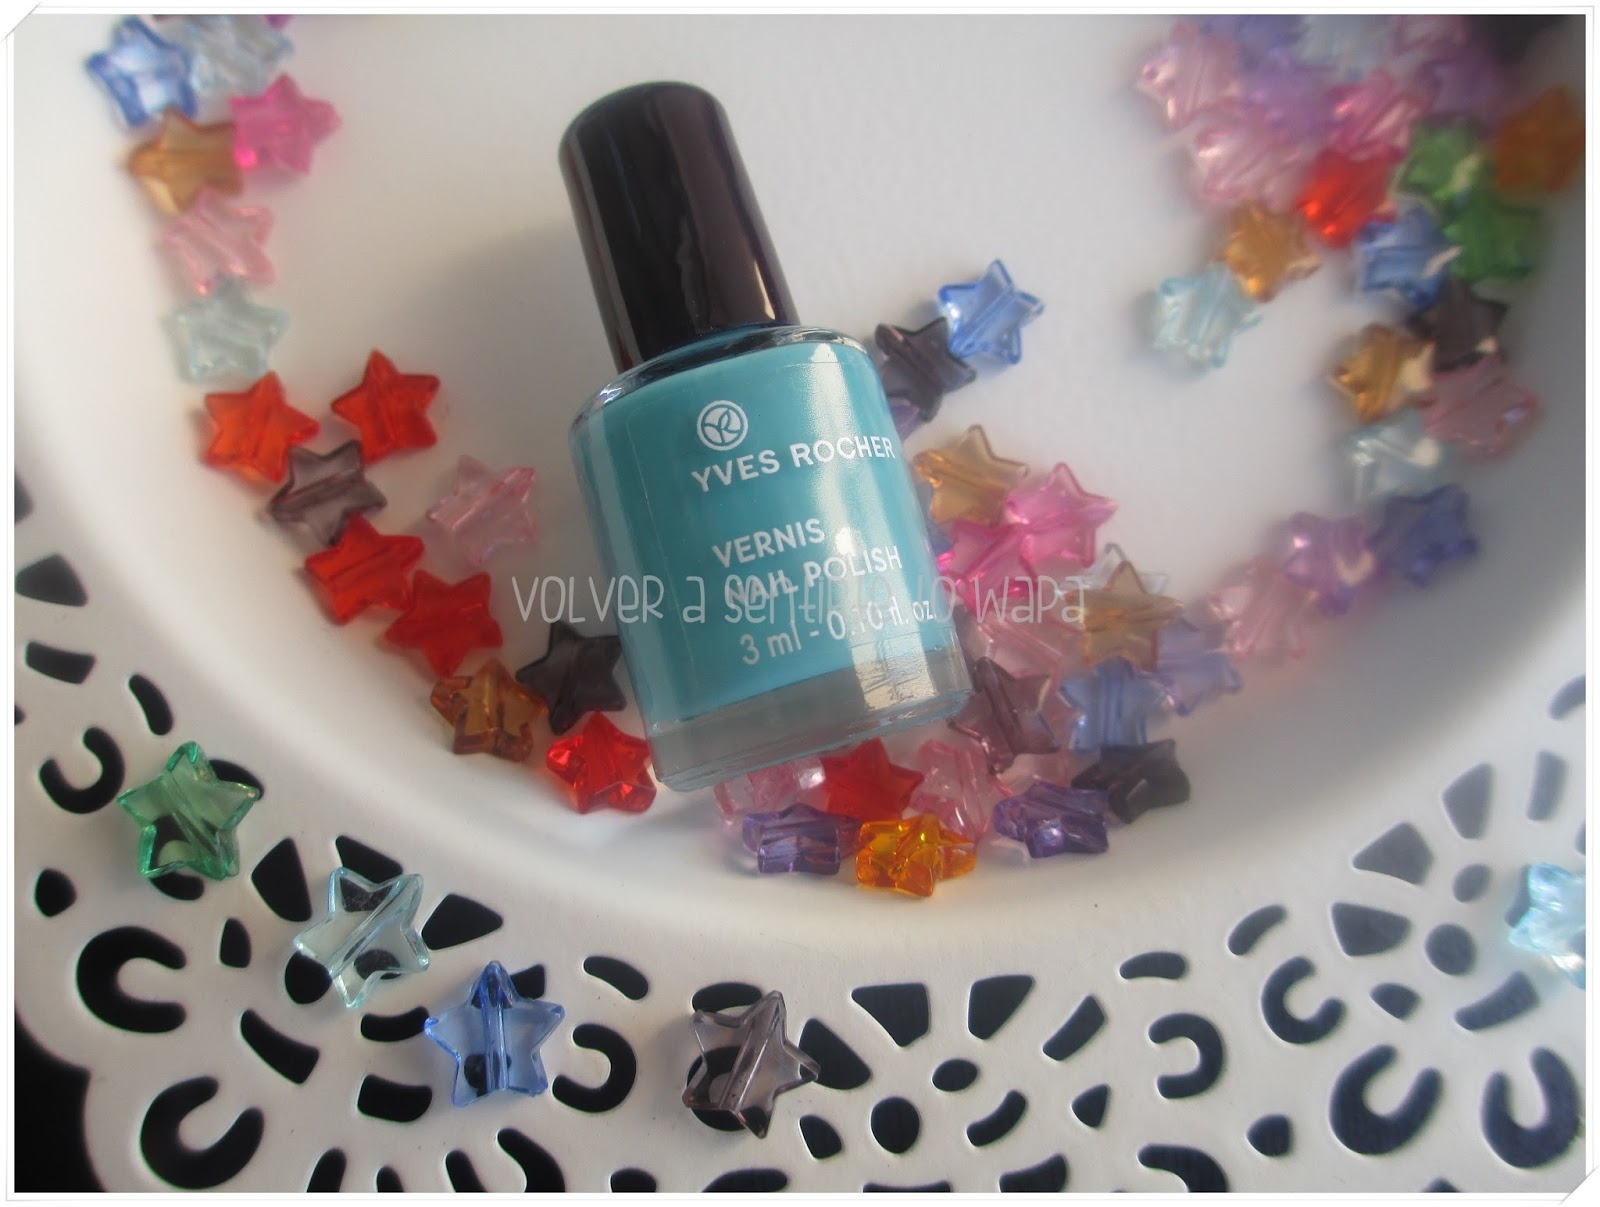 IT COLORS! los mini pintauñas de YVES ROCHER - Nuance turquoise